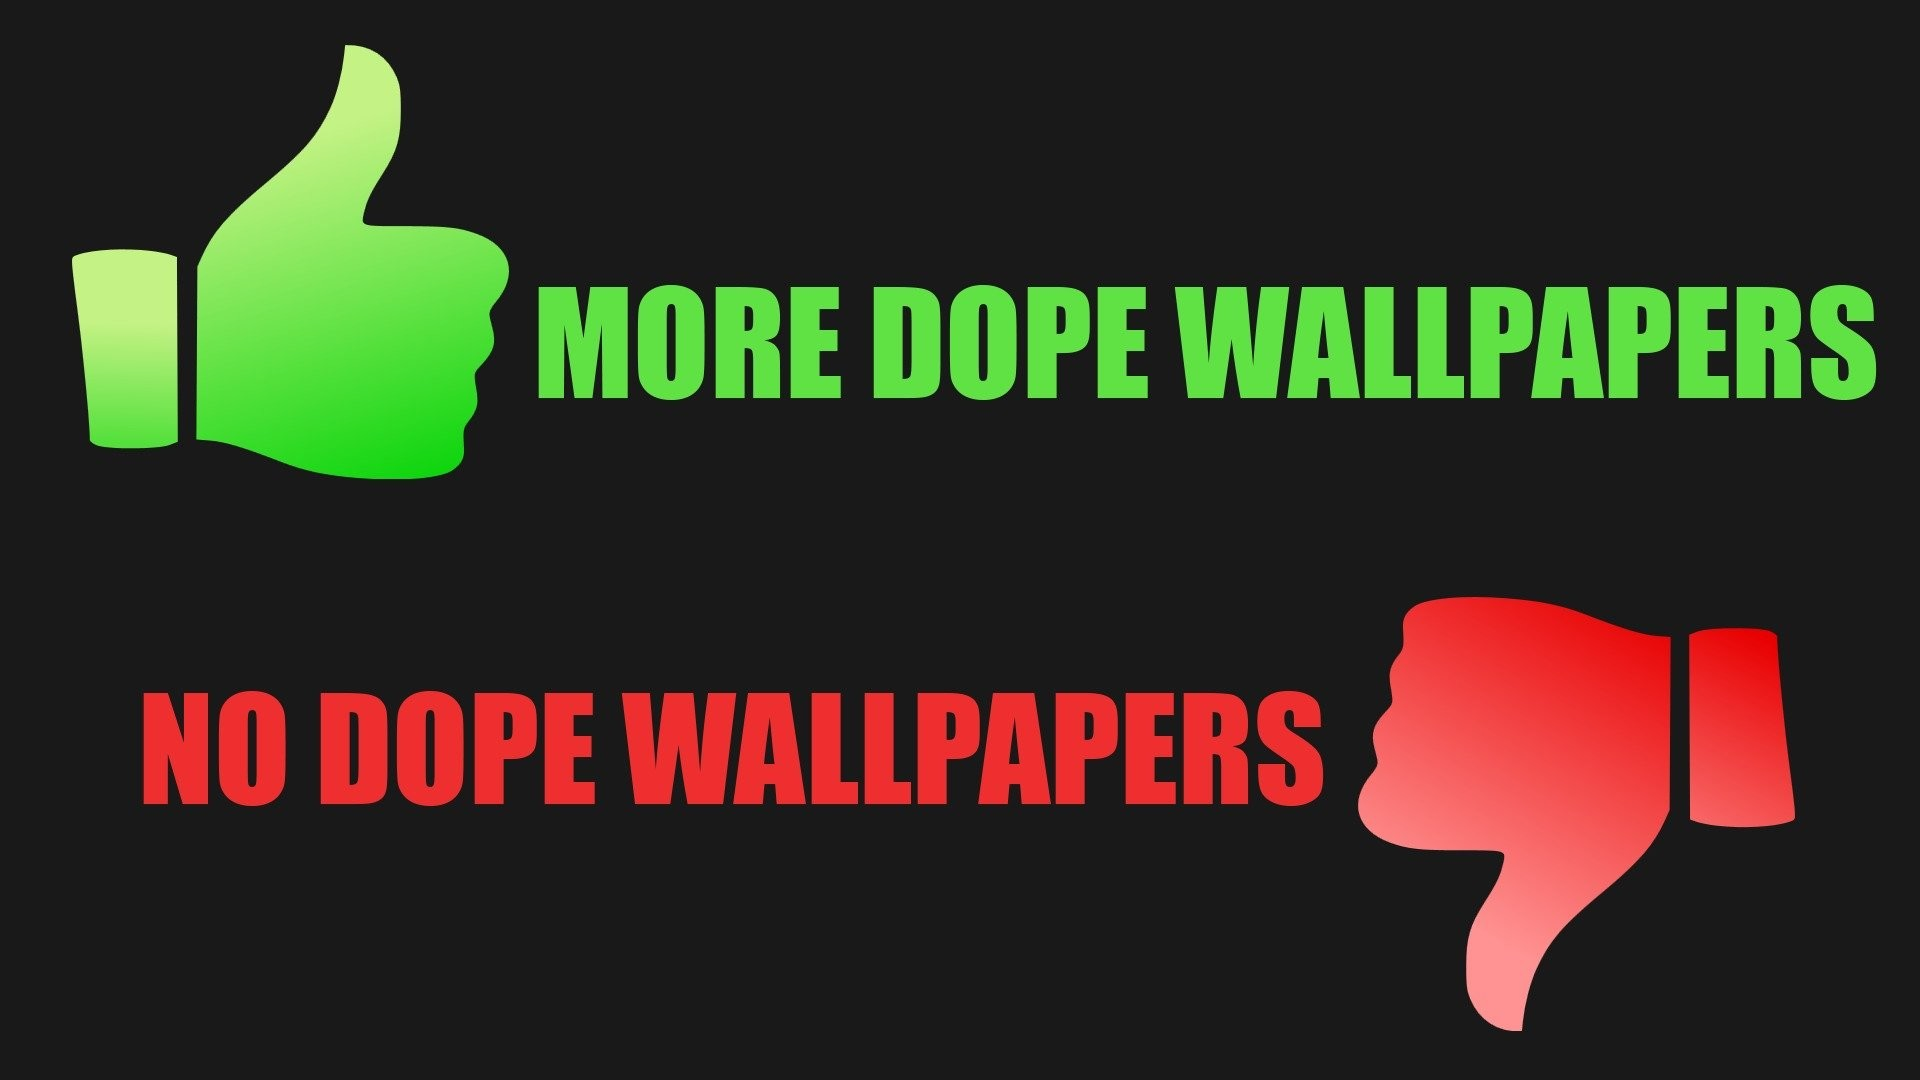 Dope #1: /channel/wallpapers/Dope+wallpapers+1… Dope #2: /channel/ wallpapers/Dope+wallpapers+2… Dope #3: /channel/wallpapers/Dope+wallpapers +3.